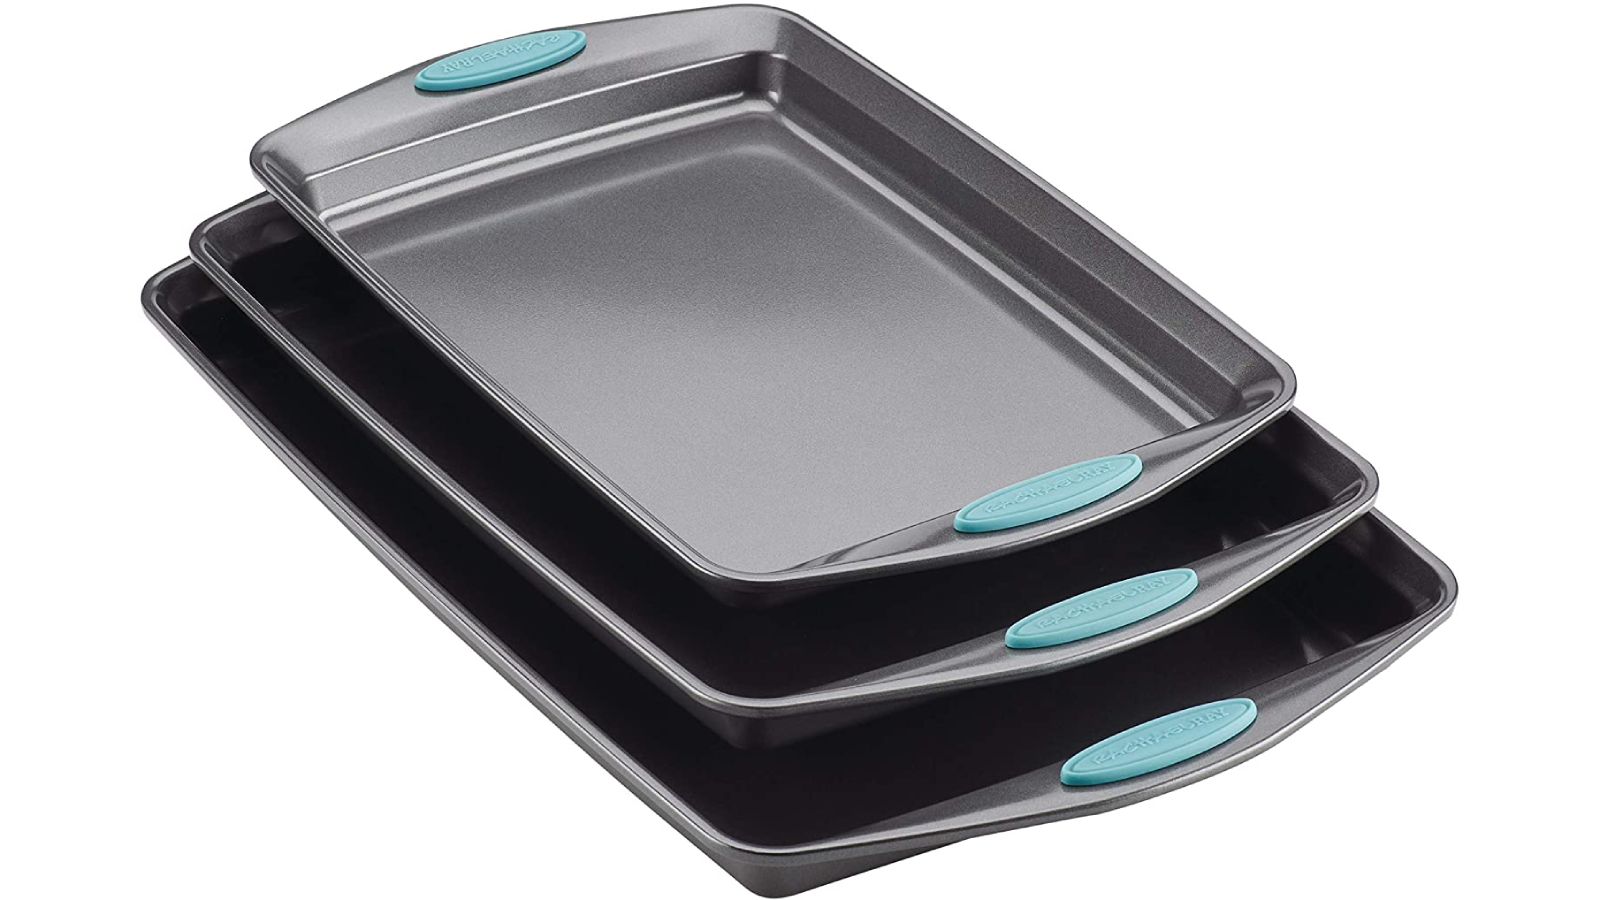 Three nested steel baking sheets with teal hand grips.